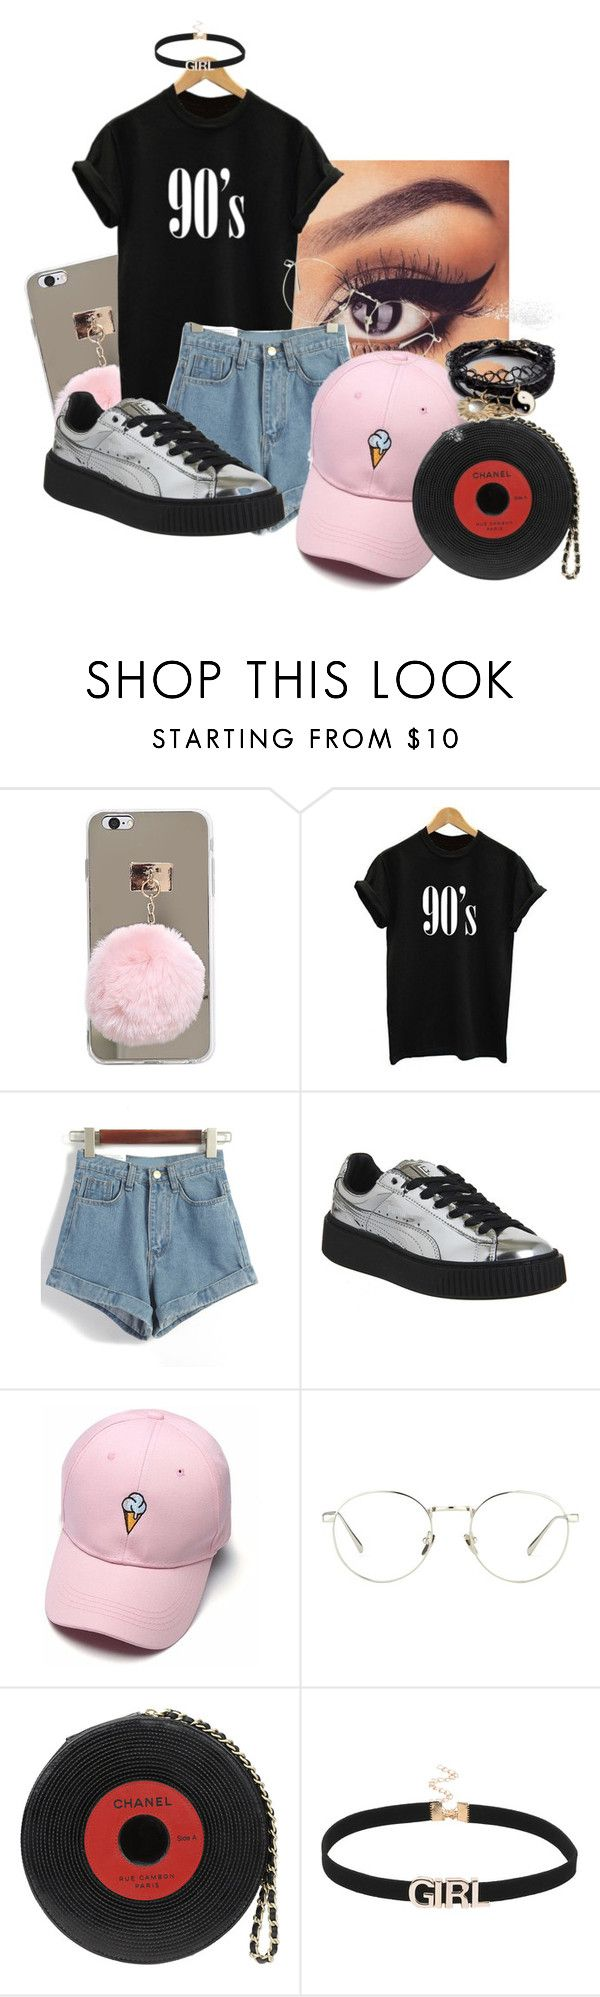 """""""Untitled #143"""" by millanj-fashion on Polyvore featuring Puma, Linda Farrow, Chanel and ASOS"""